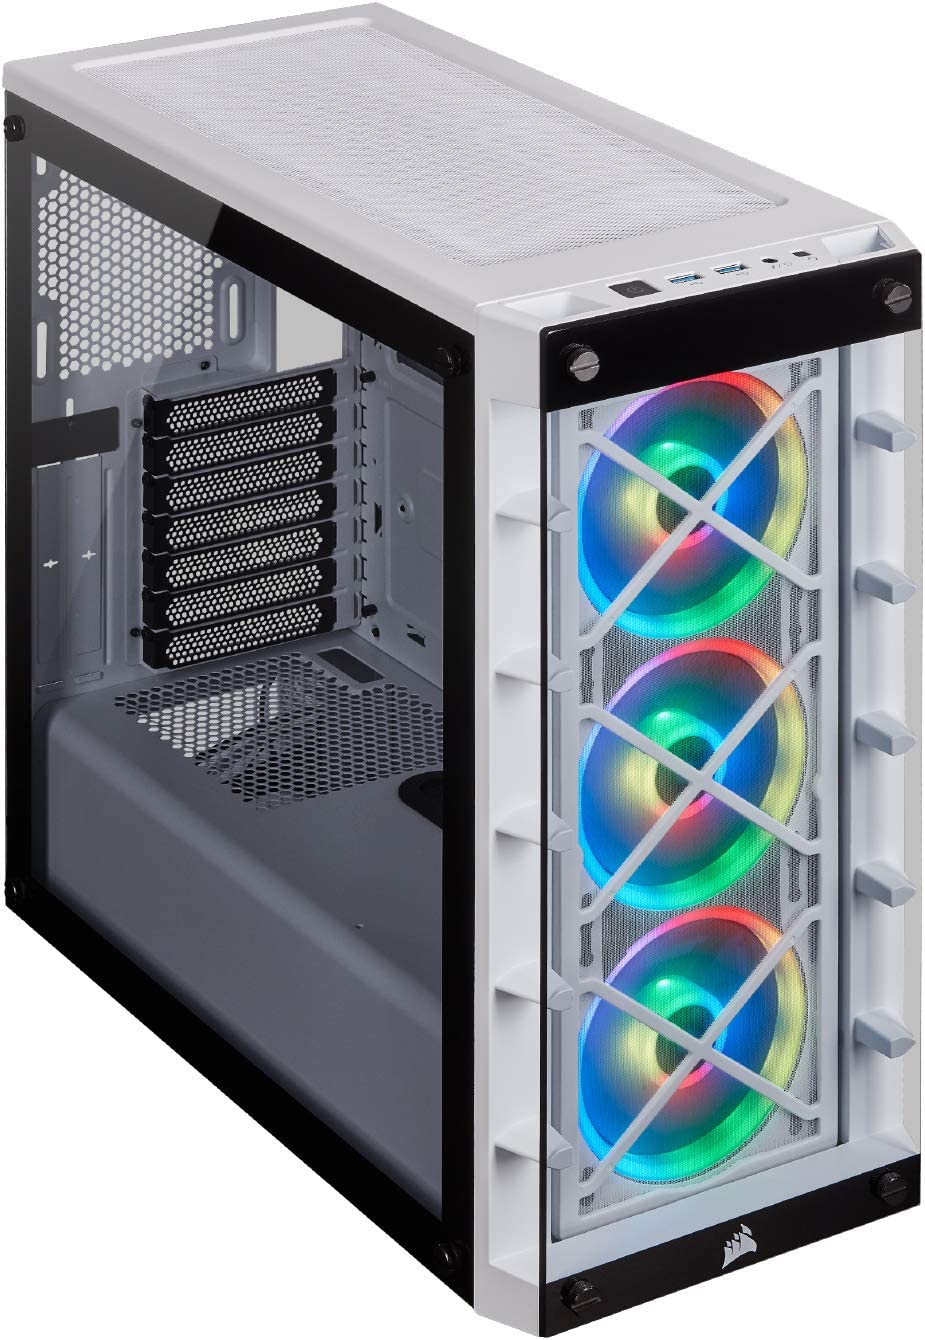 Corsair iCUE 465X RGB Mid-Tower ATX Smart Case, White